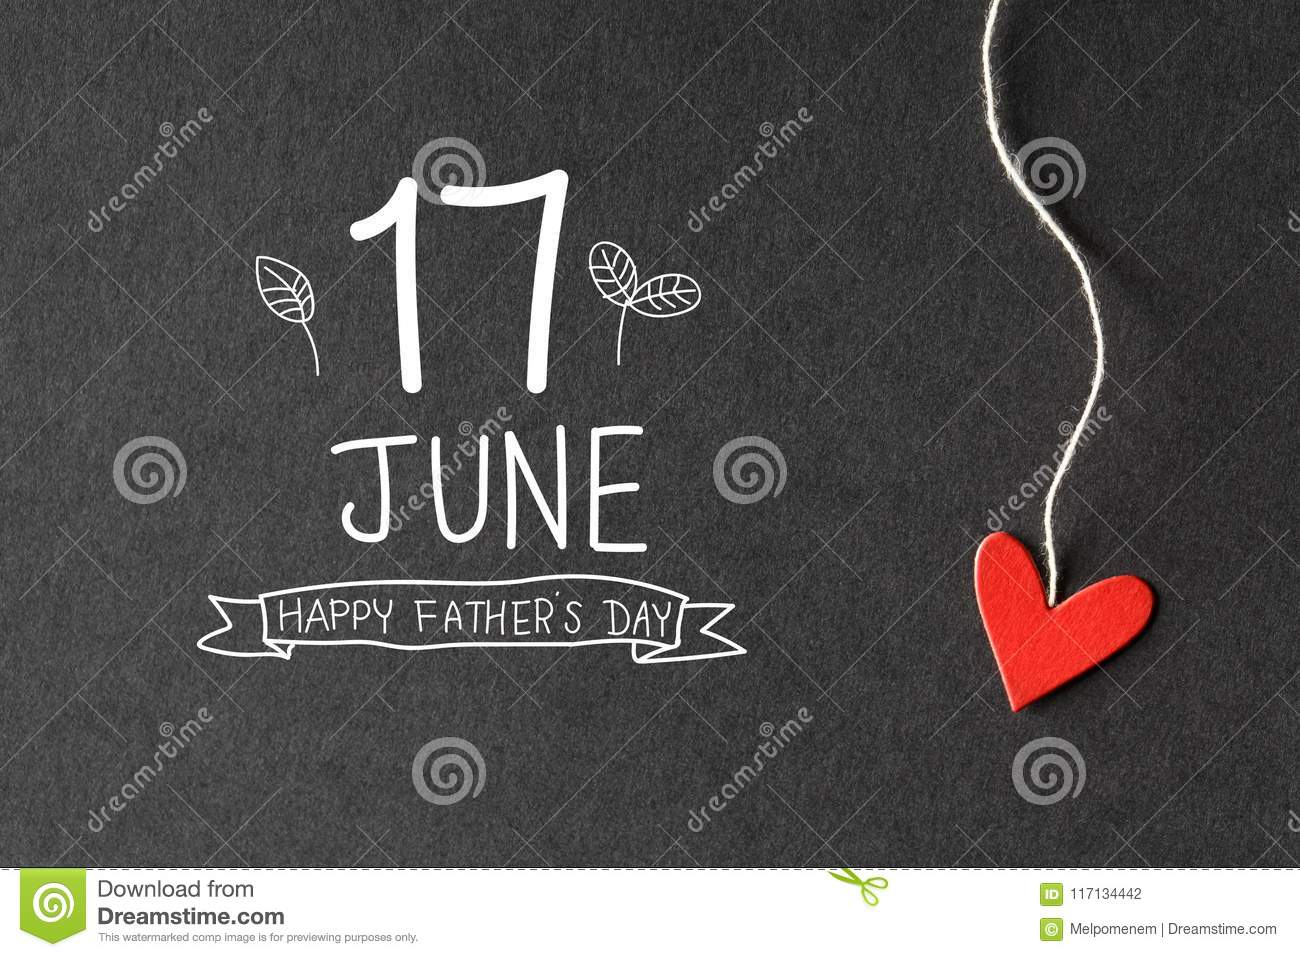 17 june happy fathers day message with paper hearts